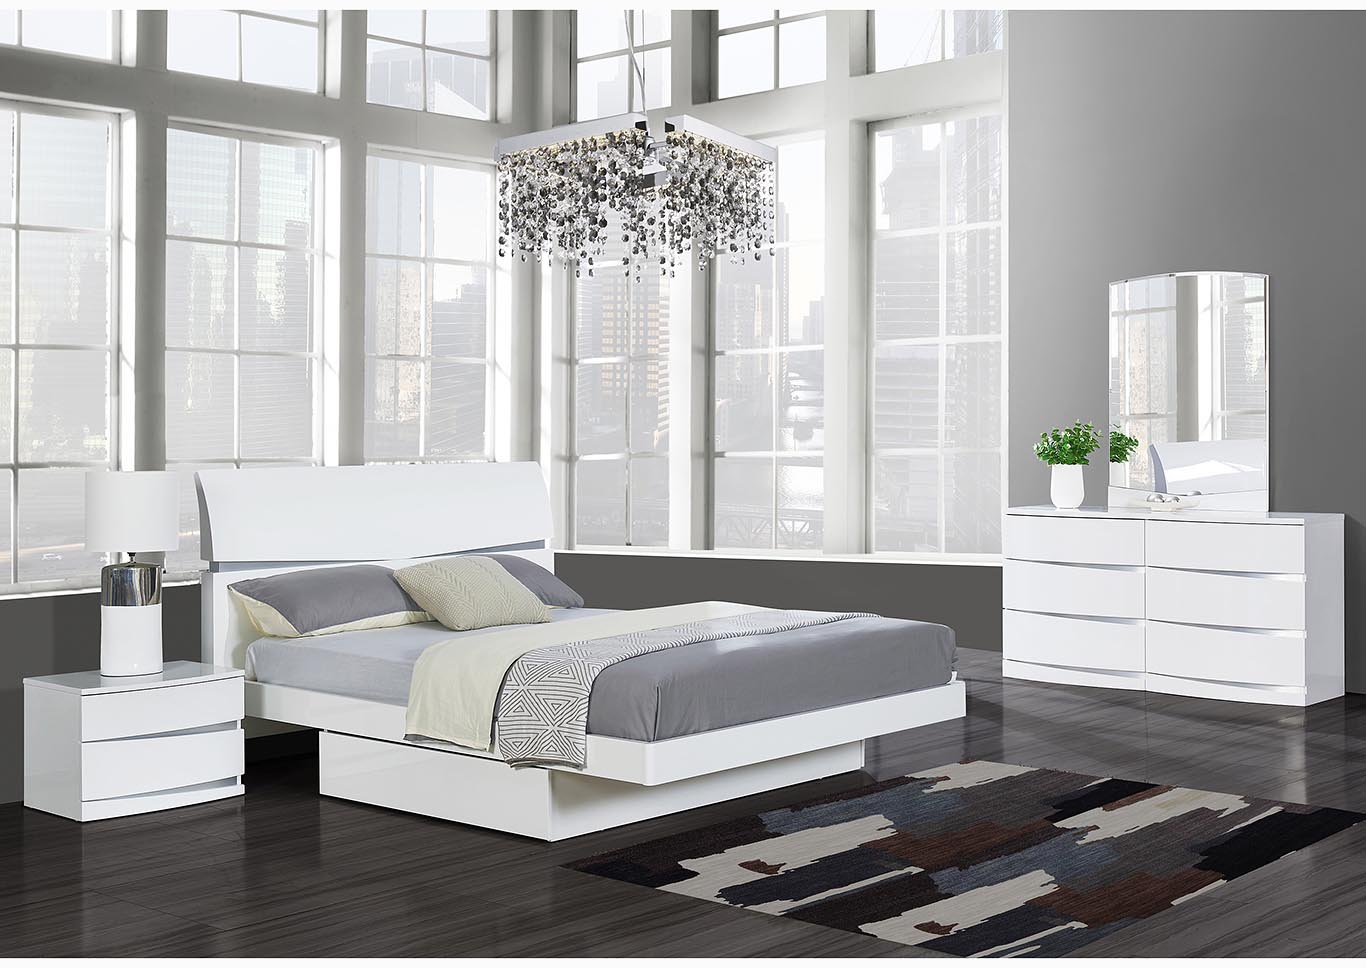 Aurora White Full Storage Platform Bed w/Dresser and Mirror,Global Furniture USA